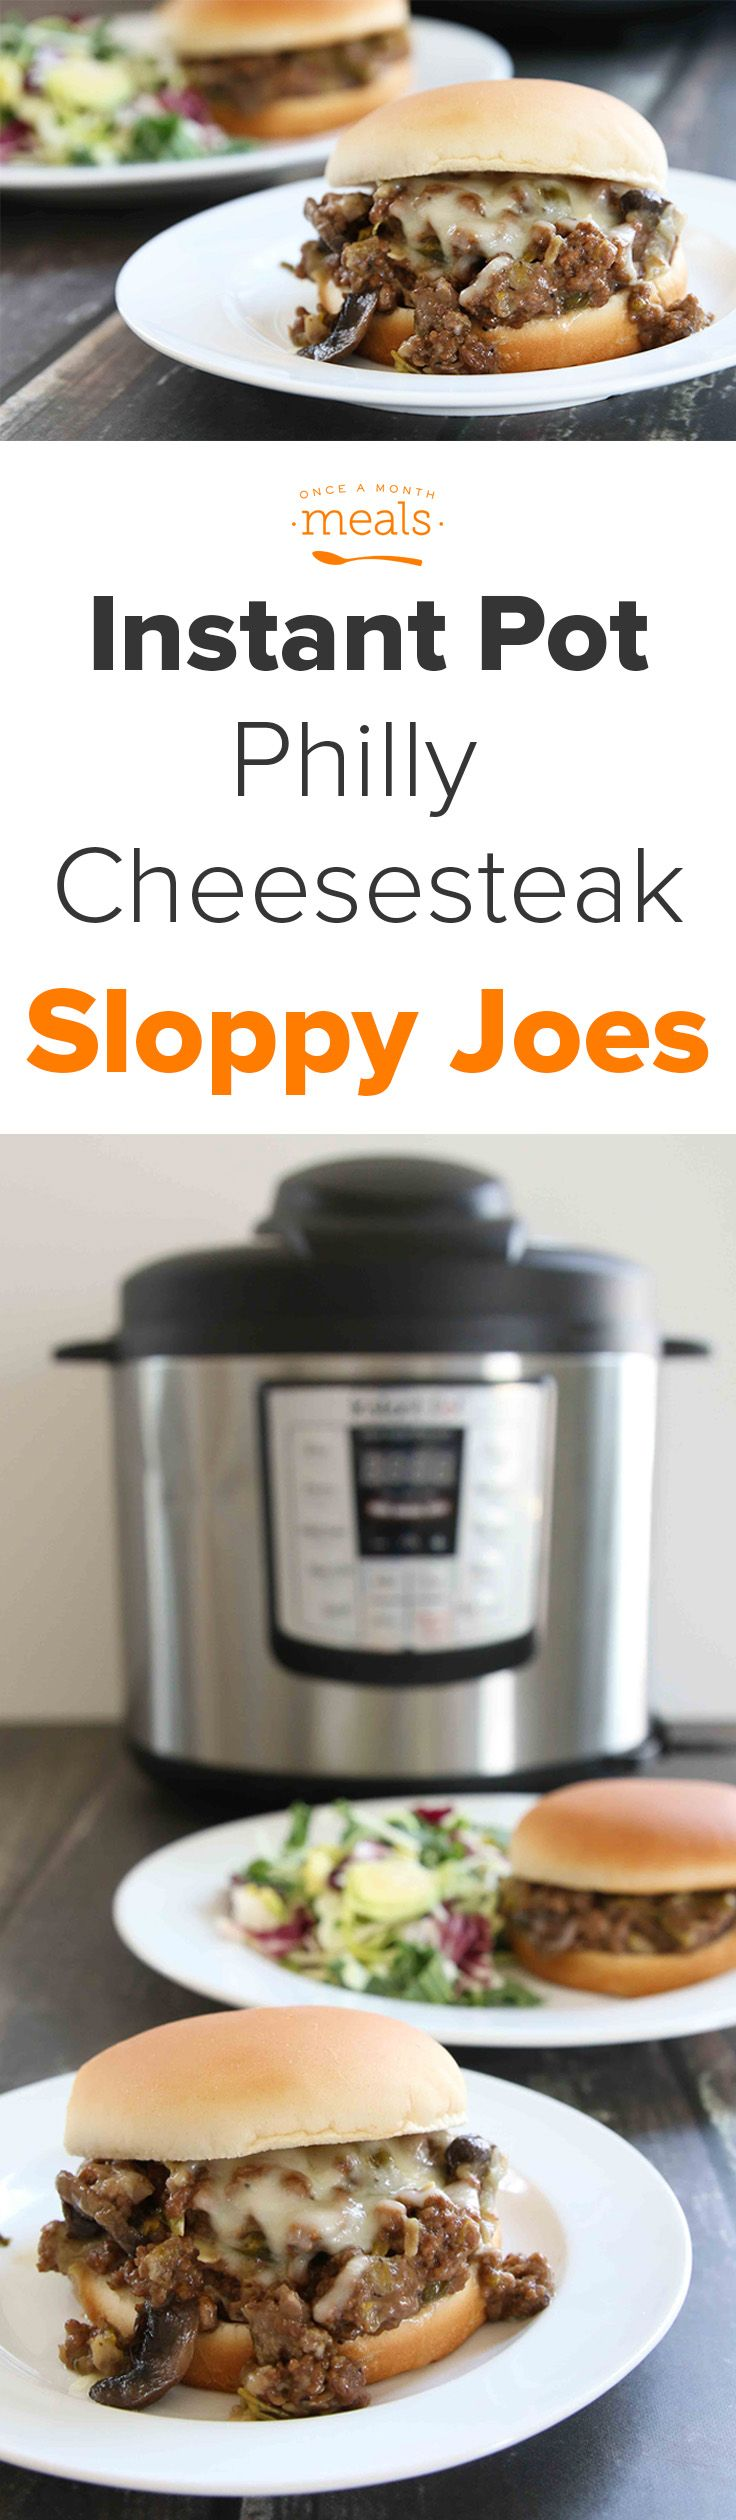 Tired of the same old sloppy joe's? Try our Instant Pot pressure cooker Philly Cheesesteak version! It's a freezer meal recipe mash-up of deliciousness. via @onceamonthmeals